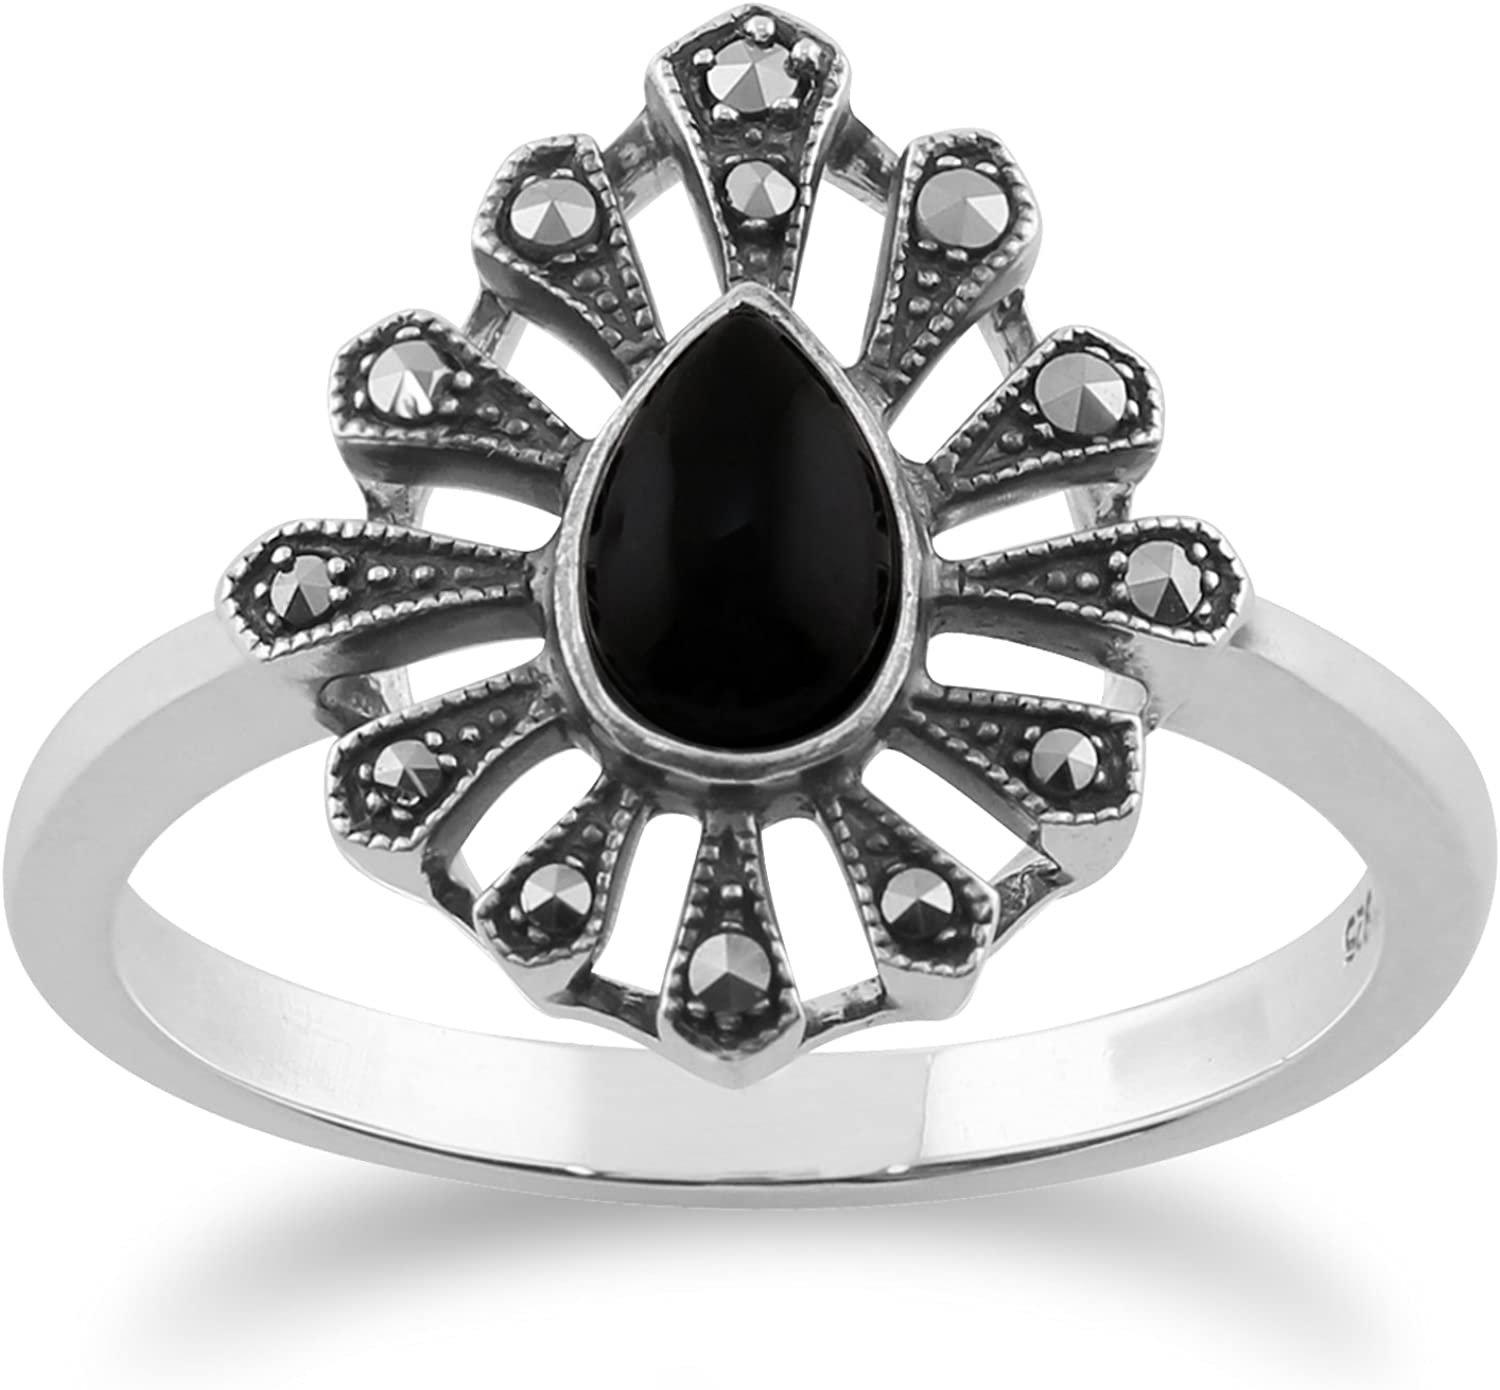 Gemondo 925 Sterling Silver 0.30ct Black Onyx & Marcasite Art Deco Ring